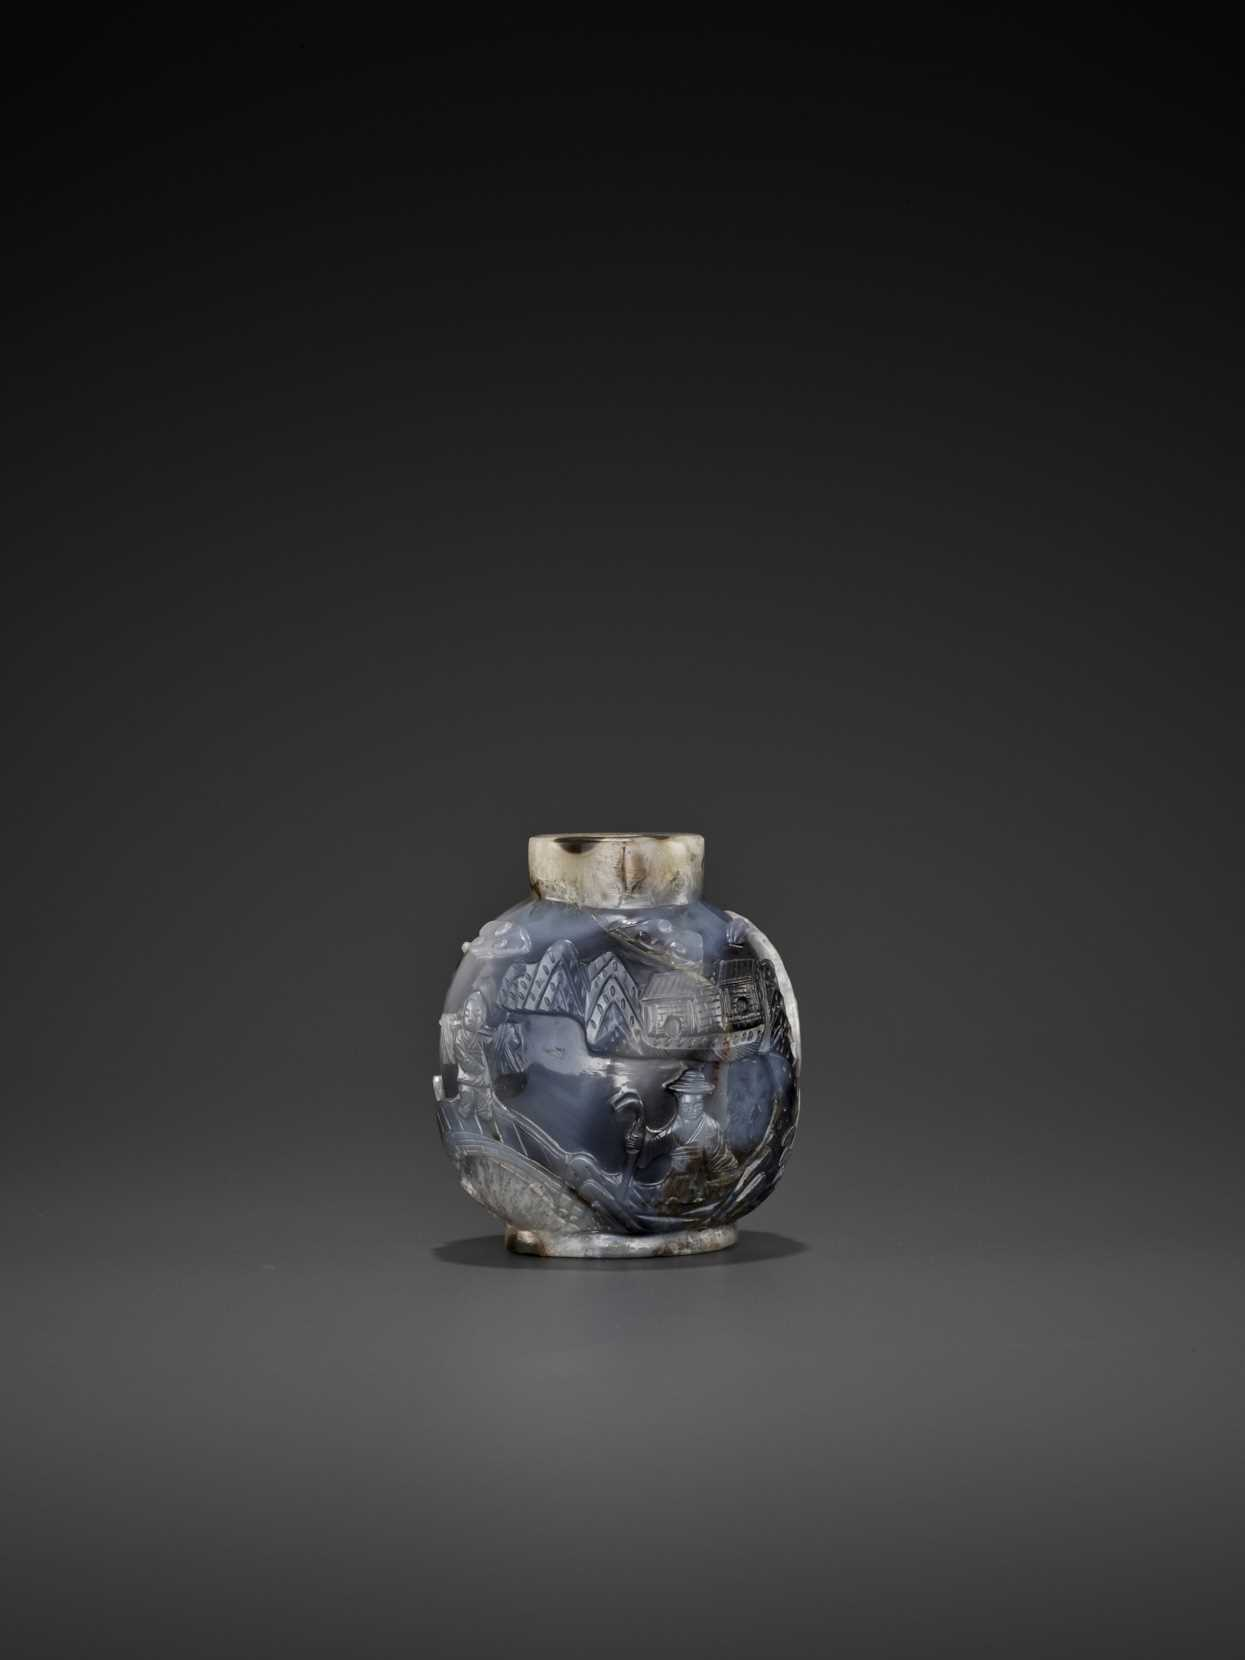 A MASSIVE SHADOW AGATE 'FISHING VILLAGE' SNUFF BOTTLE, LATE QING TO EARLY REPUBLIC